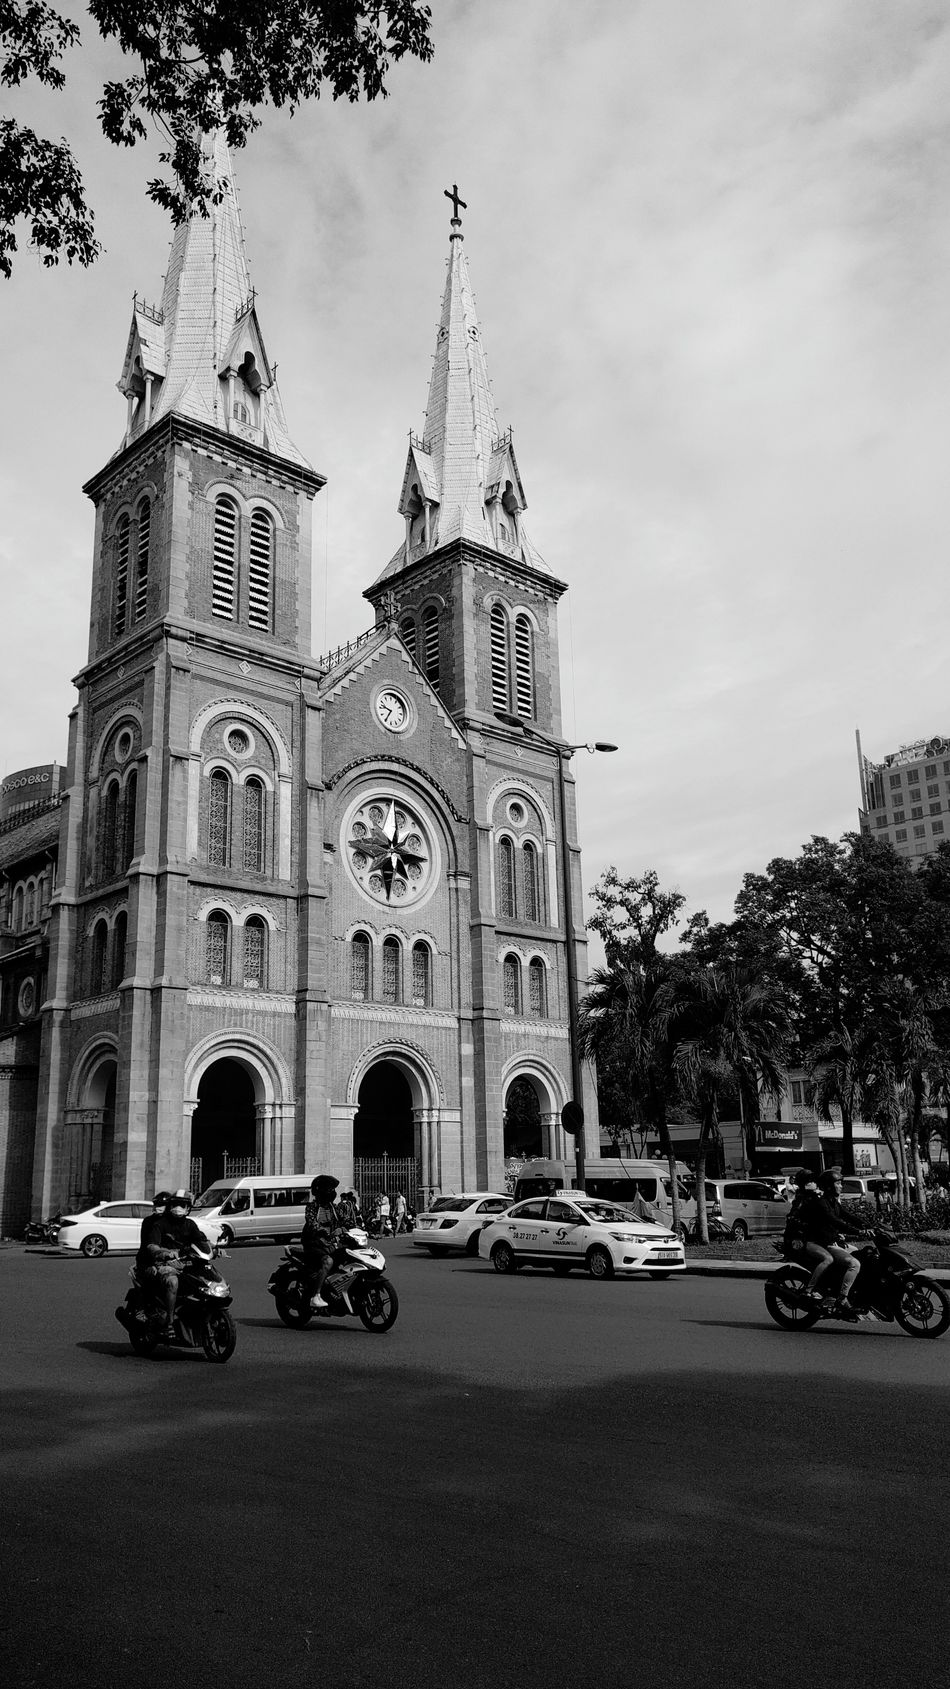 Car Architecture Clock Luxury Travel Destinations History City No People Building Exterior Yellow Taxi Outdoors Sky Clock Tower Day Nhathoducba Saigon Weekend